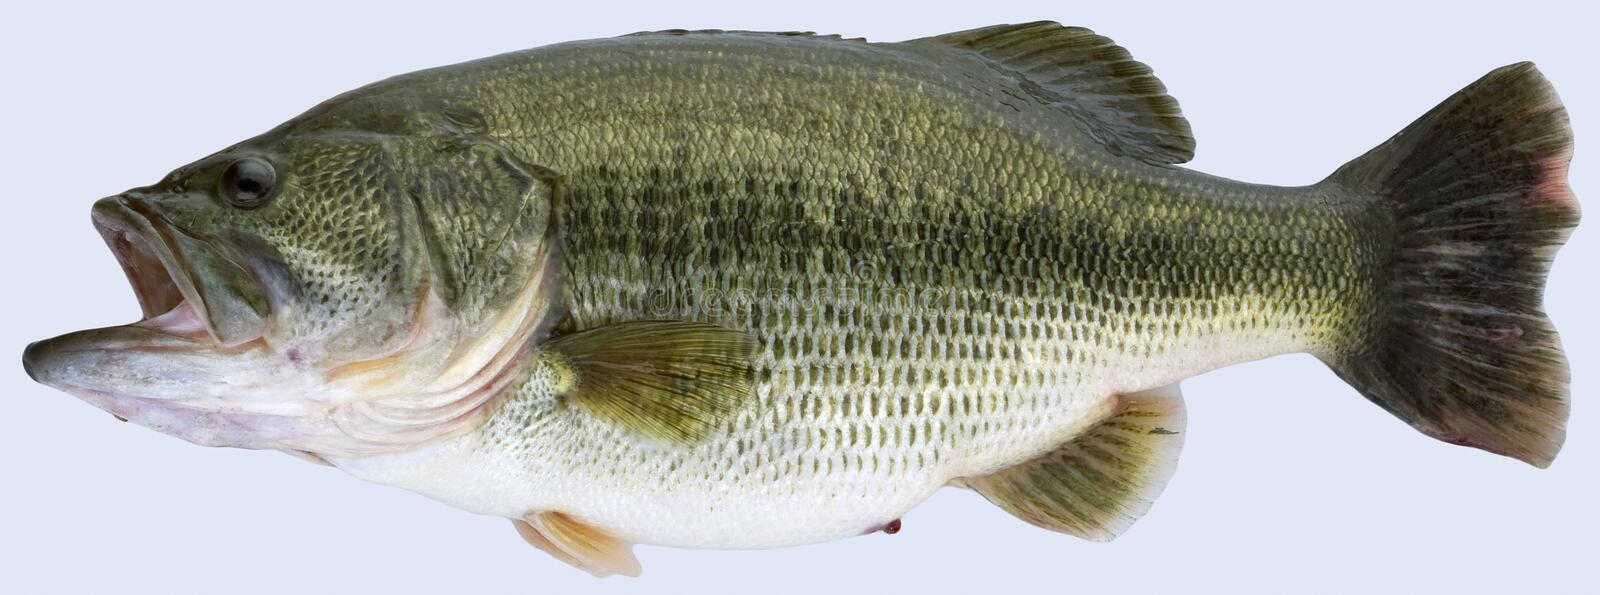 Trophy Largemouth Bass stock photography